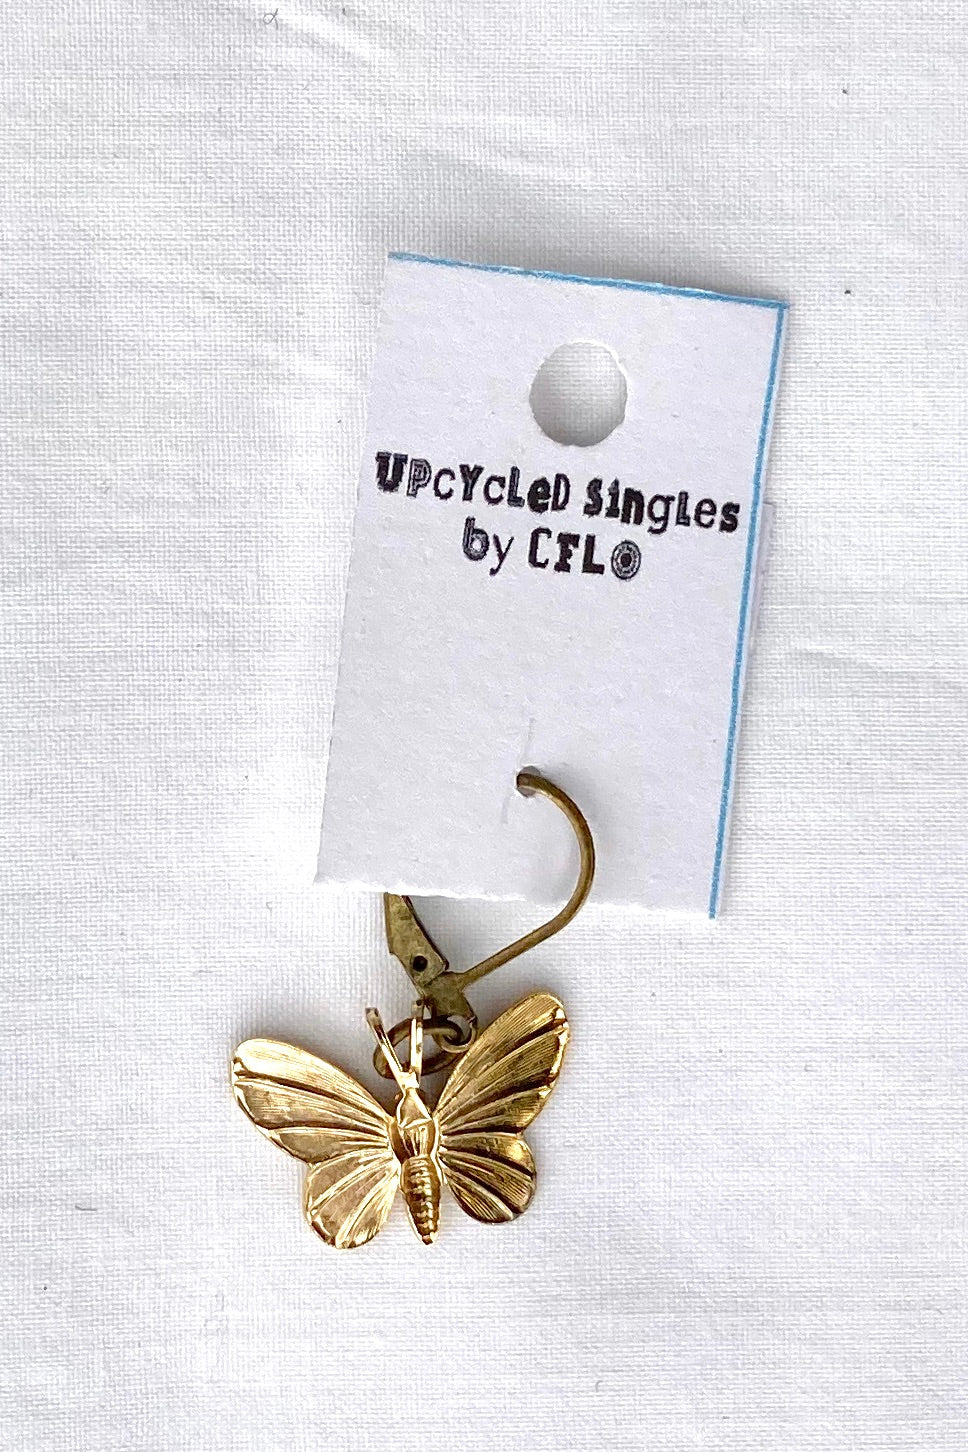 Upcycled Singles! Gold Butterfly! Vintage Charms For Your Ears!